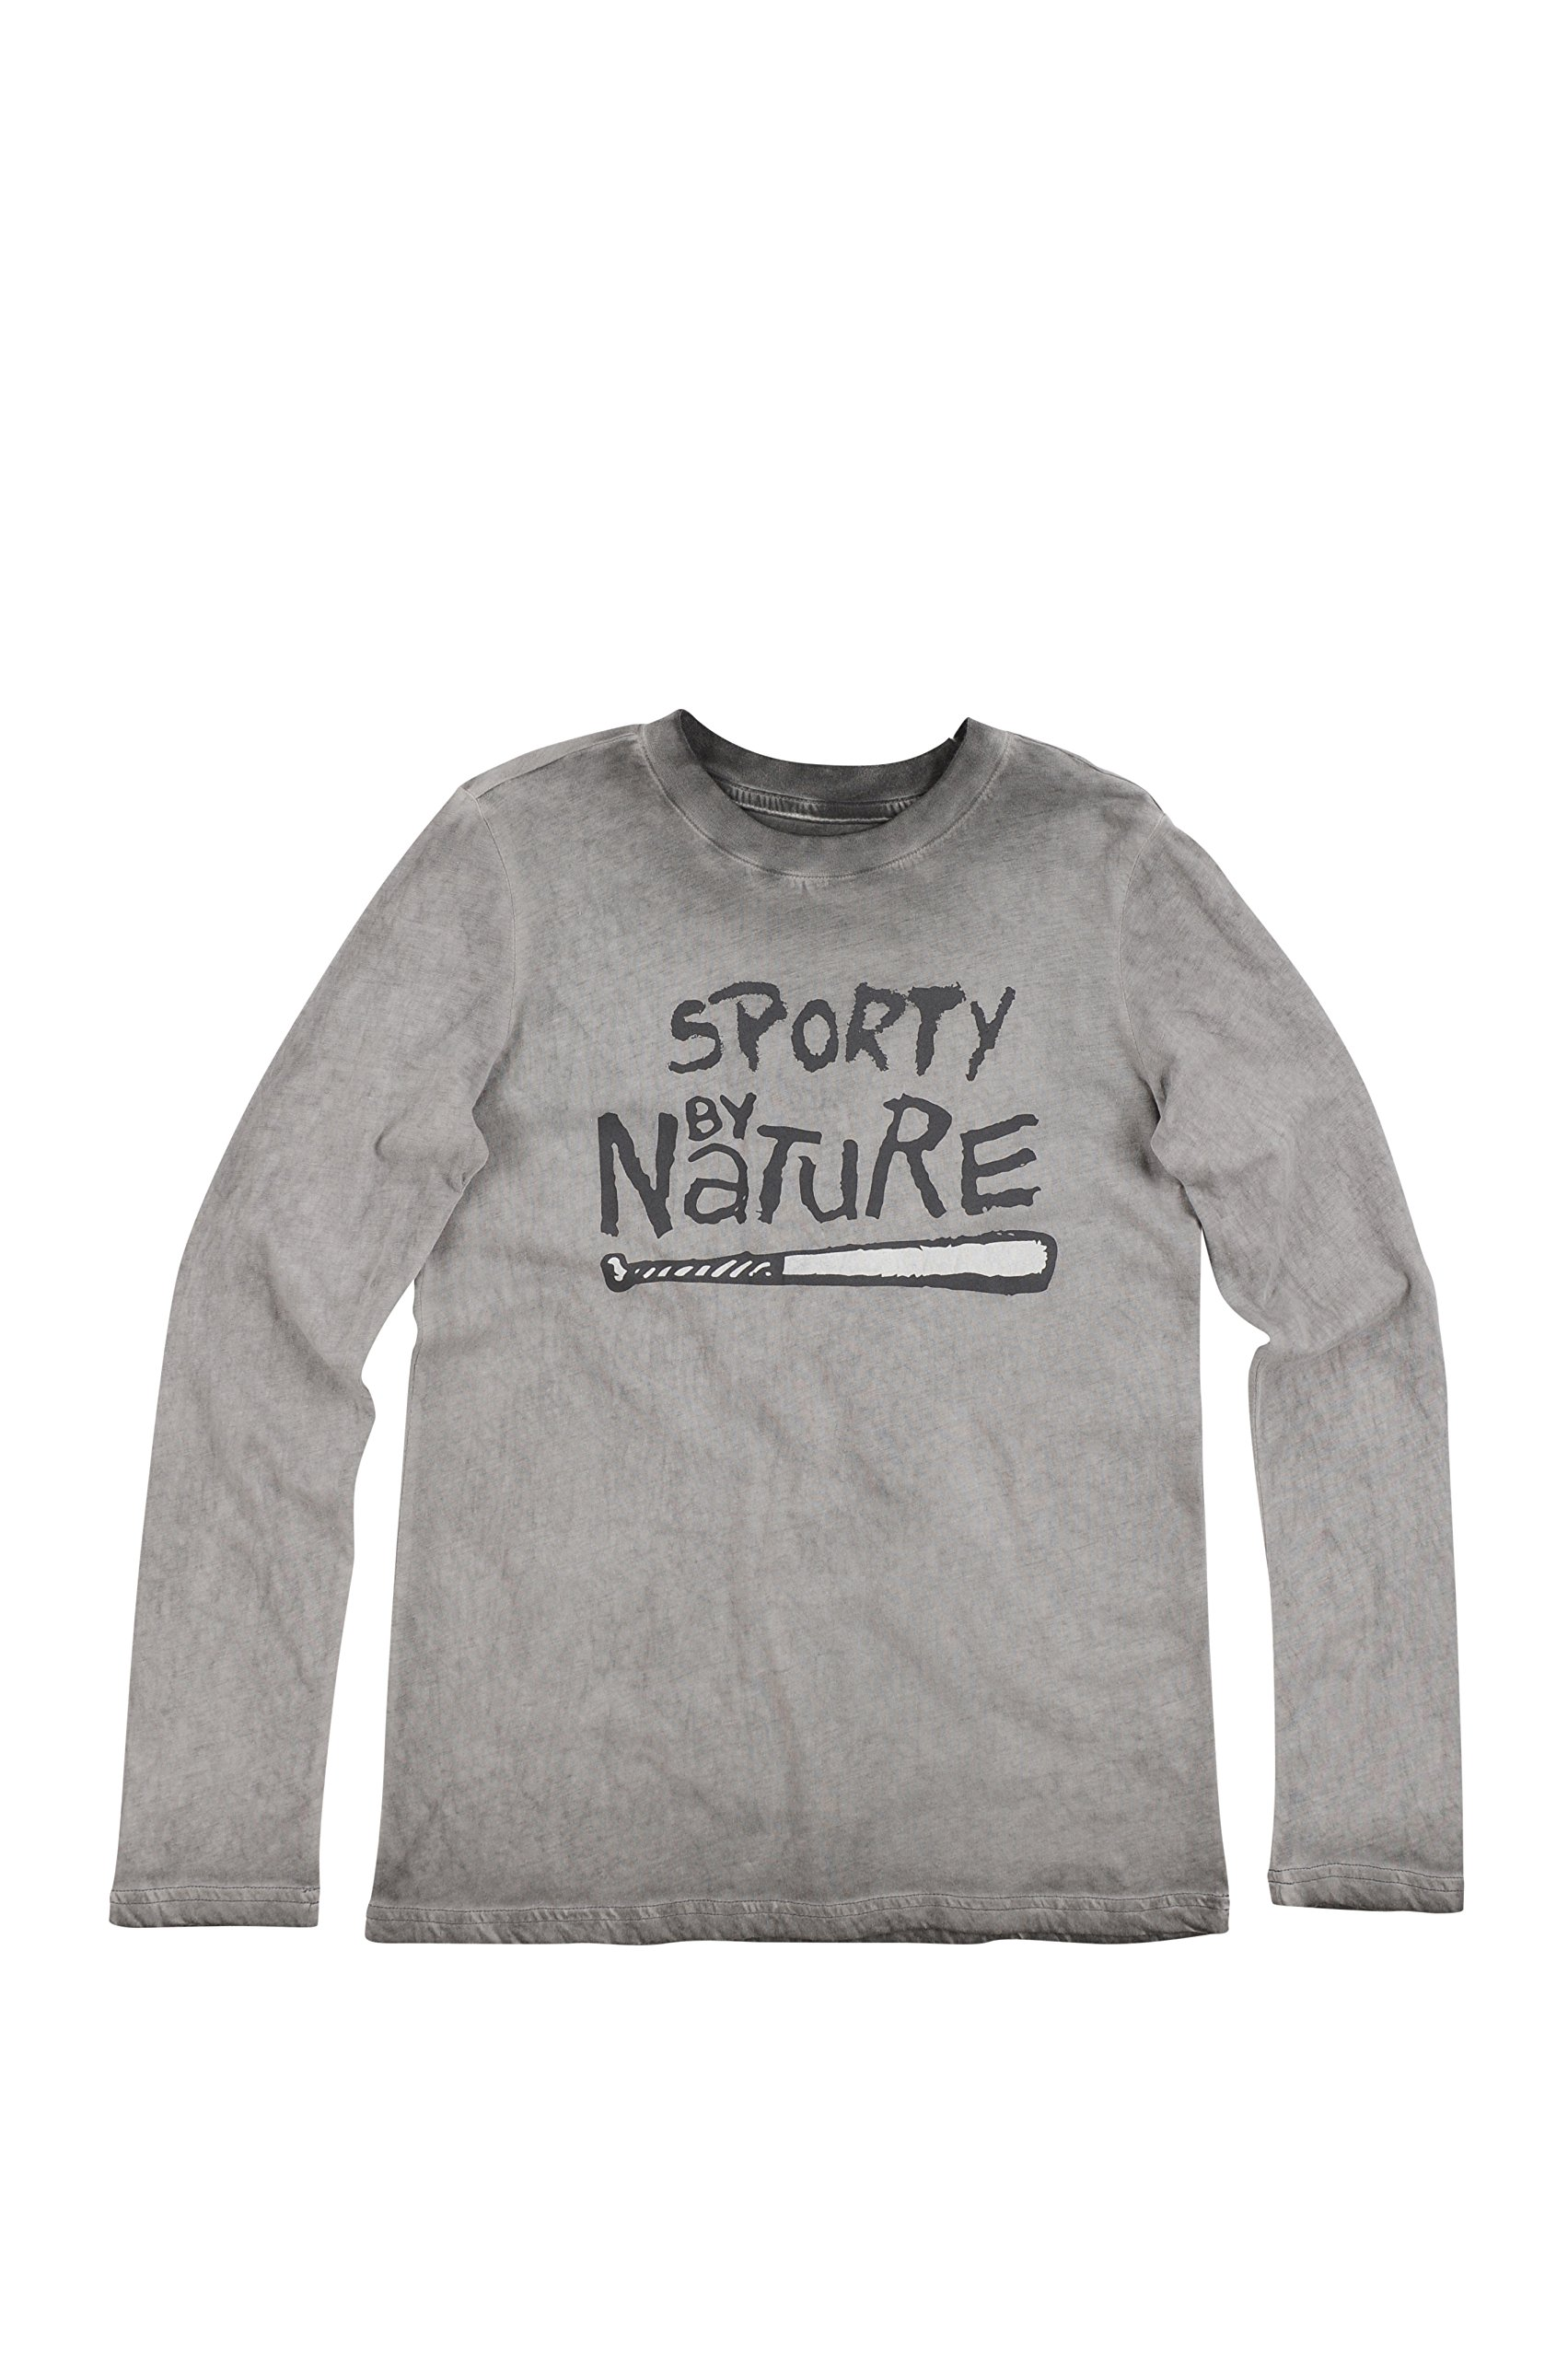 BUTTER SUPER SOFT Long Sleeve Crew Neck Sporty by Nature Mineral Wash T-Shirt Gargoyle Large by BUTTER SUPER SOFT